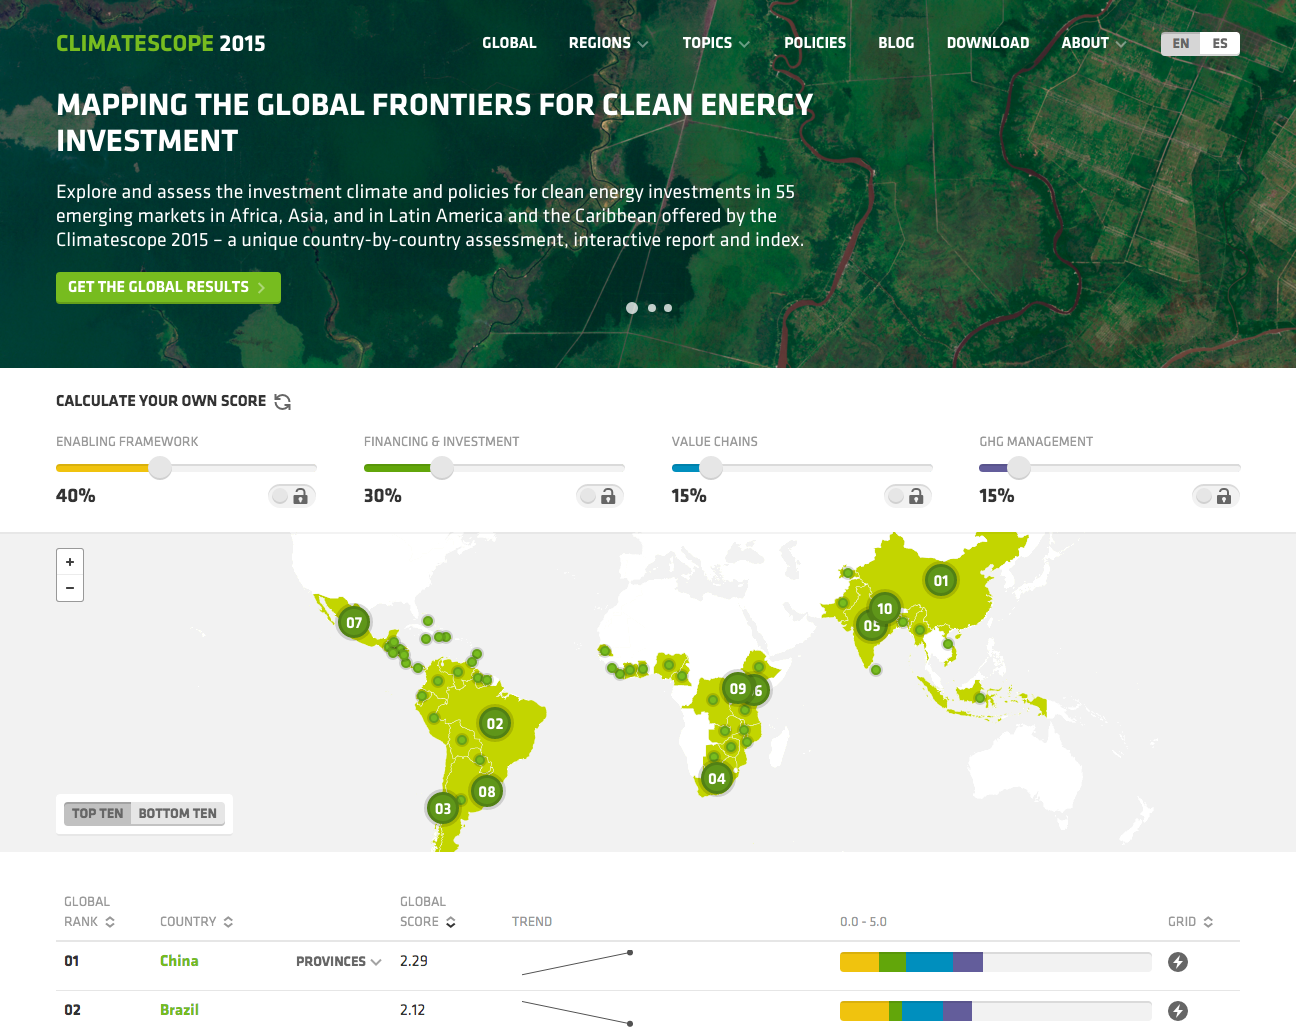 Homepage of the climatescope 2015